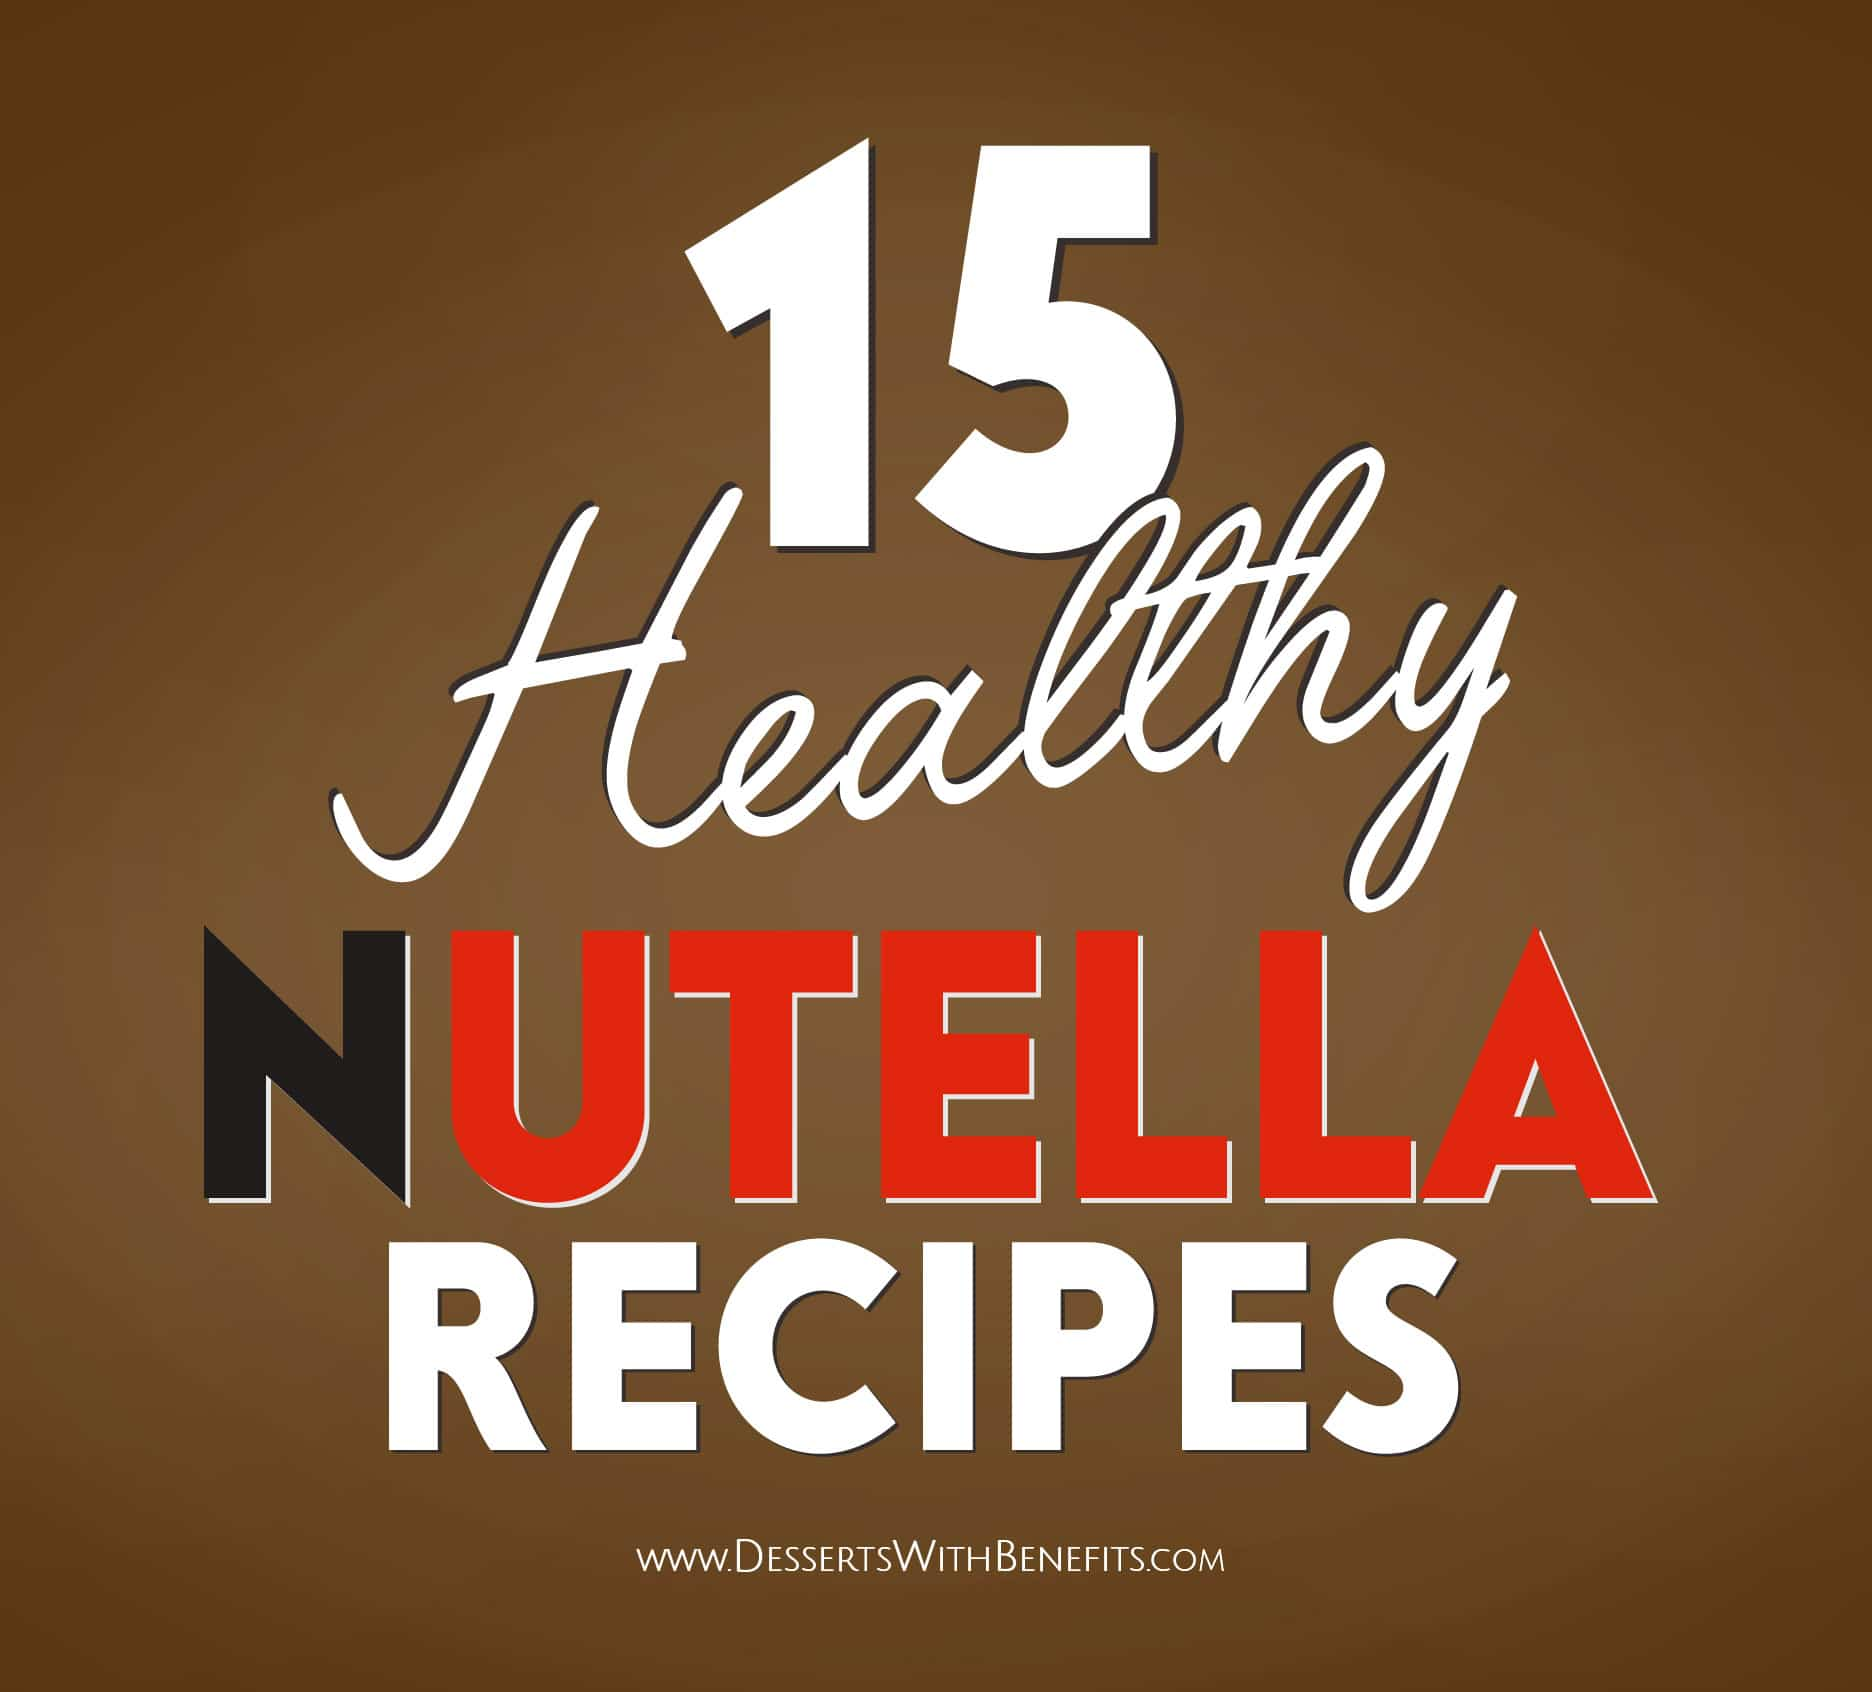 15 Healthy Nutella Recipes! Indulge in all that sweet chocolate-hazelnut flavor but without all the excess calories, refined sugar, palm oil, and artificial ingredients. From Nutella Fudge to Nutella Frozen Yogurt to Nutella Cookie Dough to Nutella Protein Bars, and more!